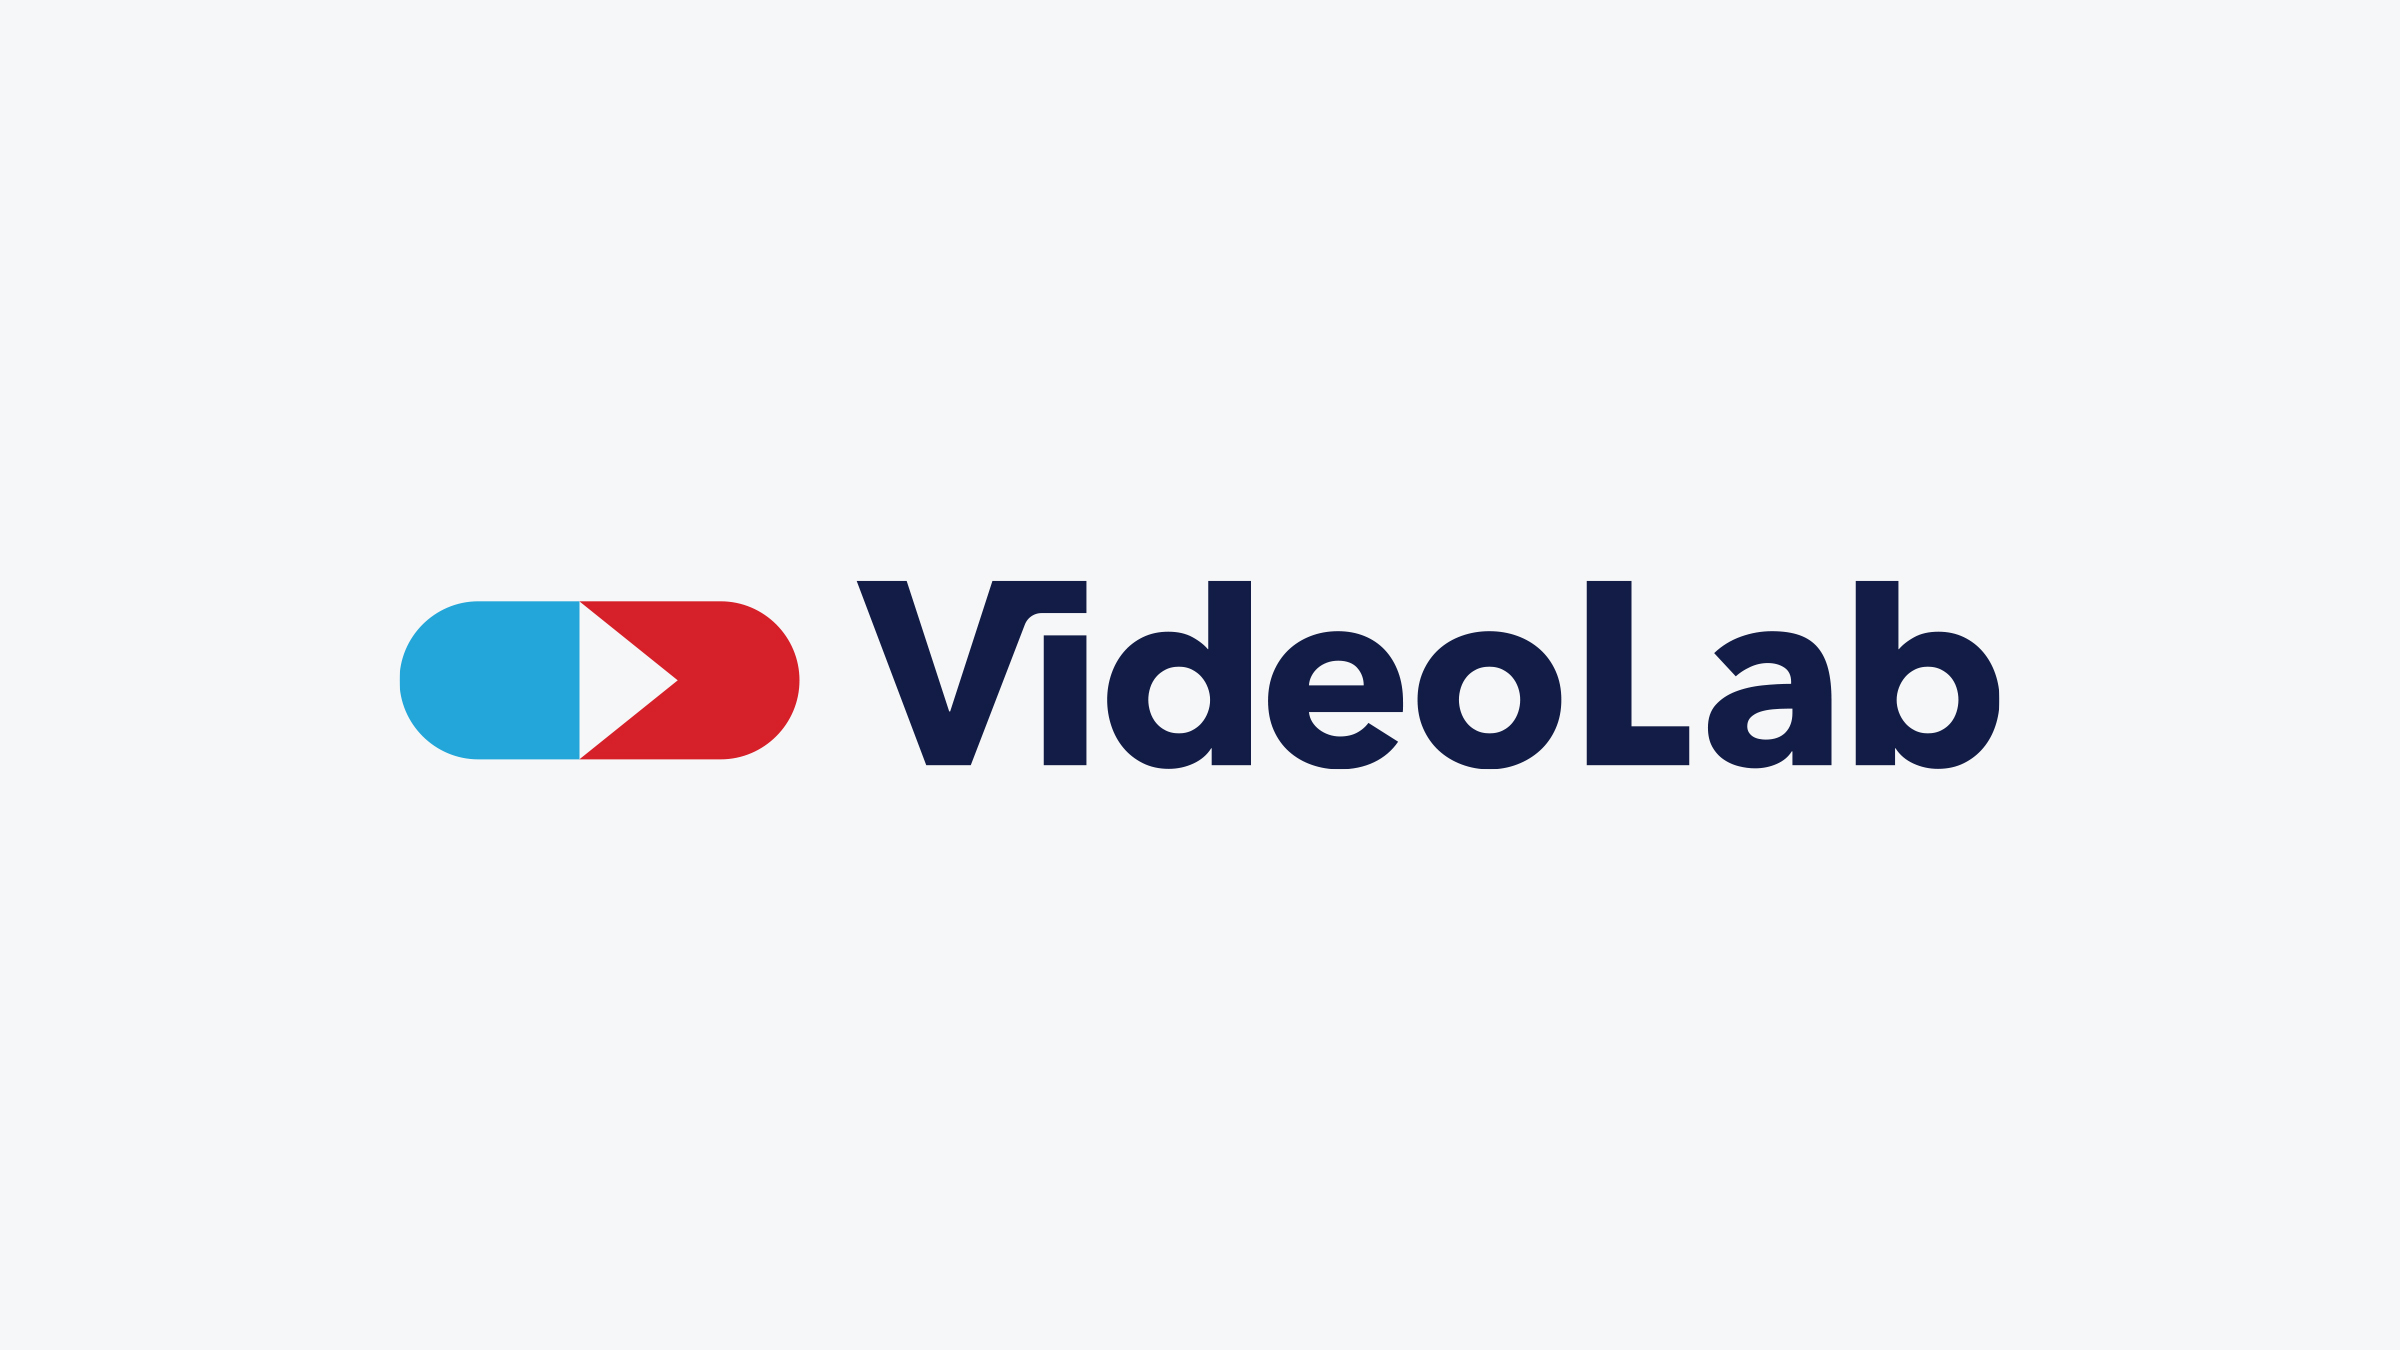 VideoLab brand logo blue on white